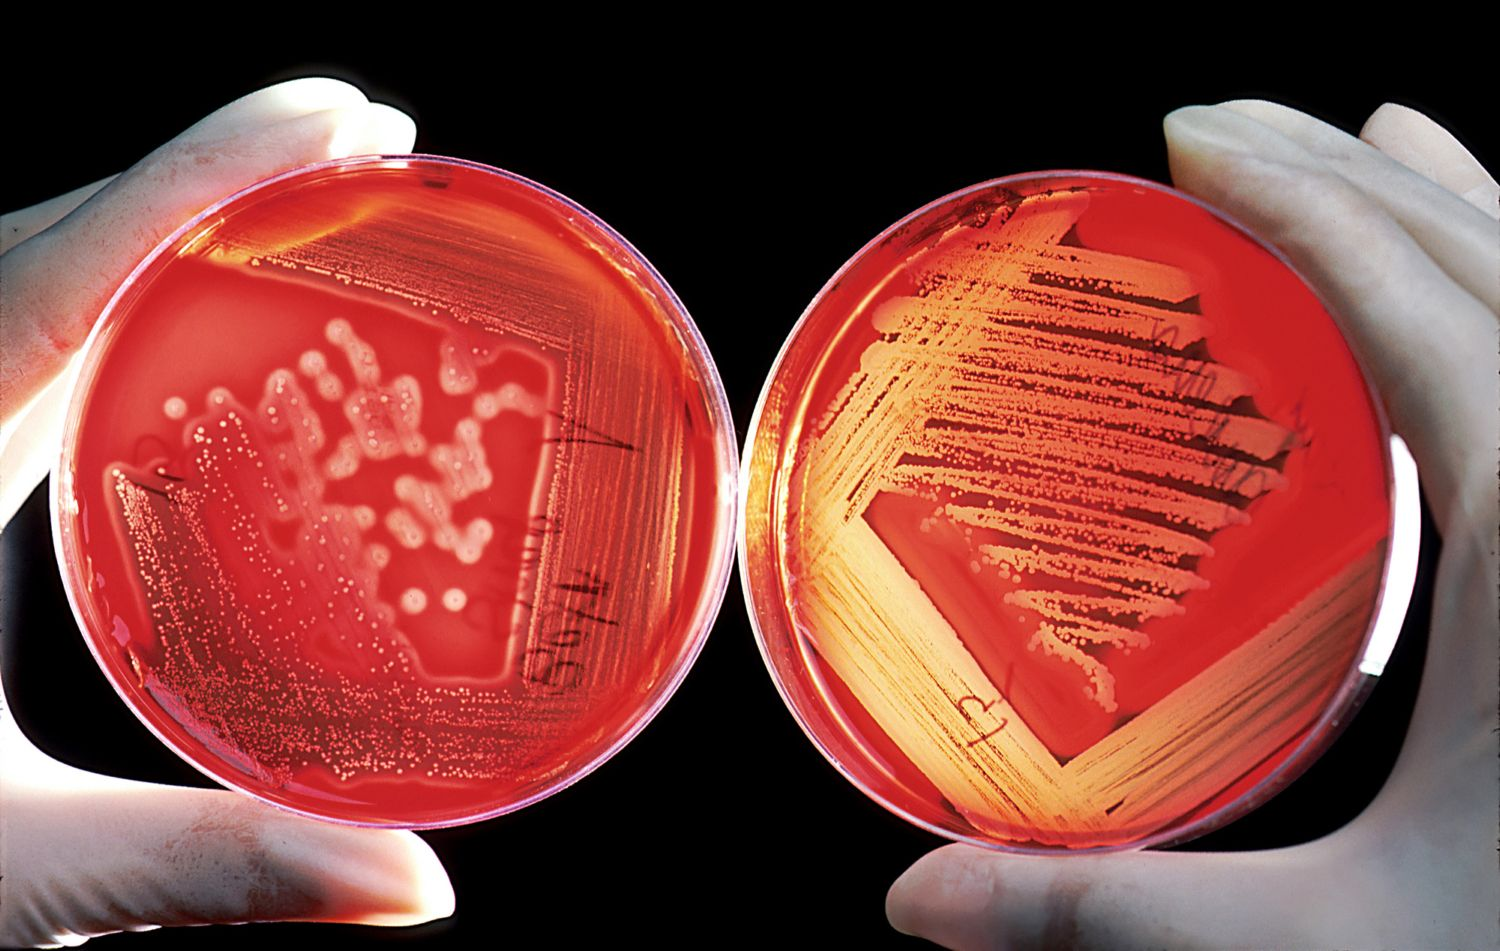 gloved hands holding two red petri dishes